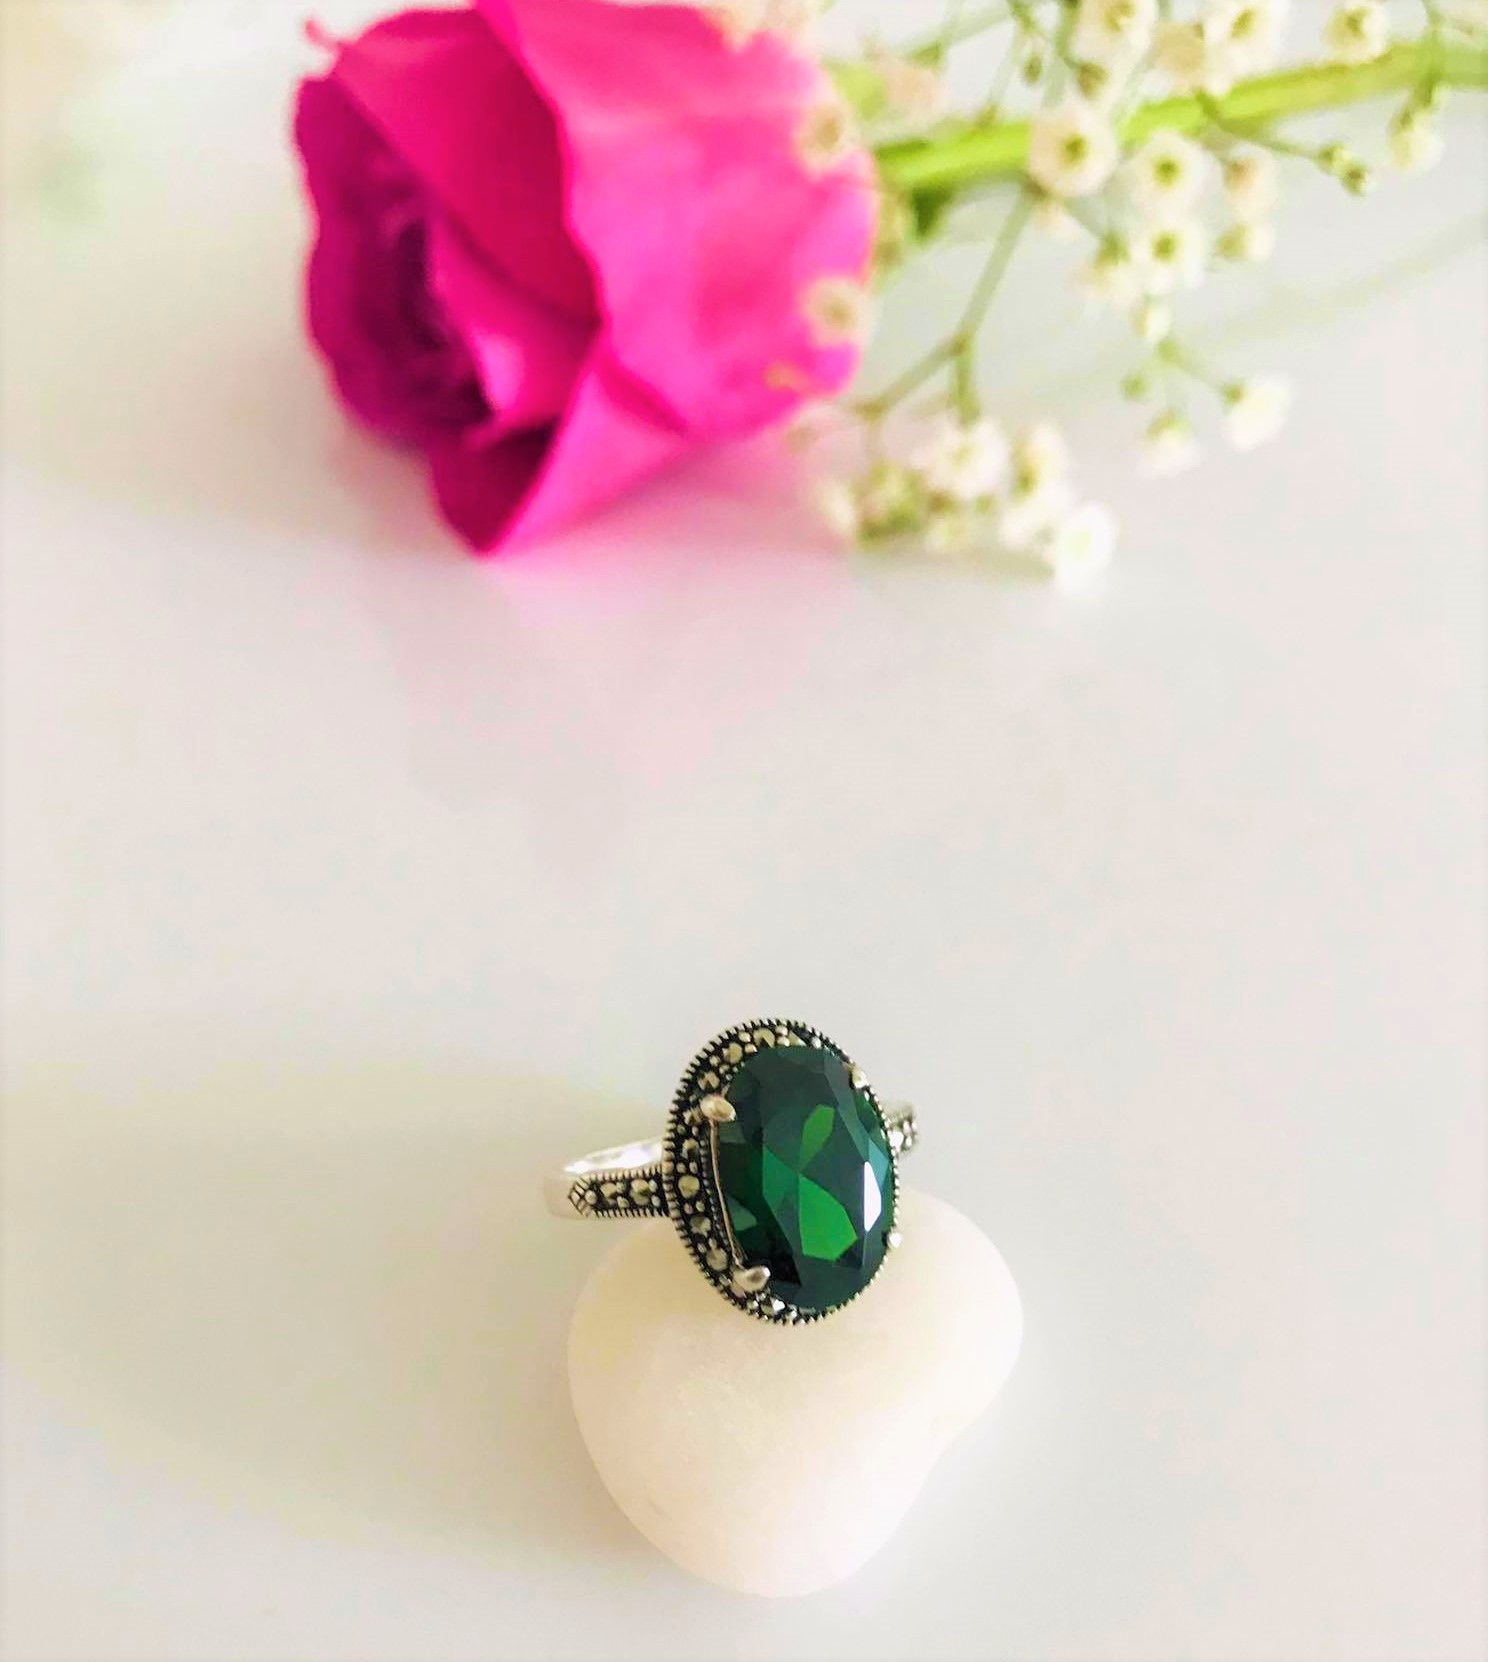 Stunning Oval Cut Emerald   Marcasite Halo  Sterling Silver Ring. US Size: 6 , 7, 9, 10  Available Image